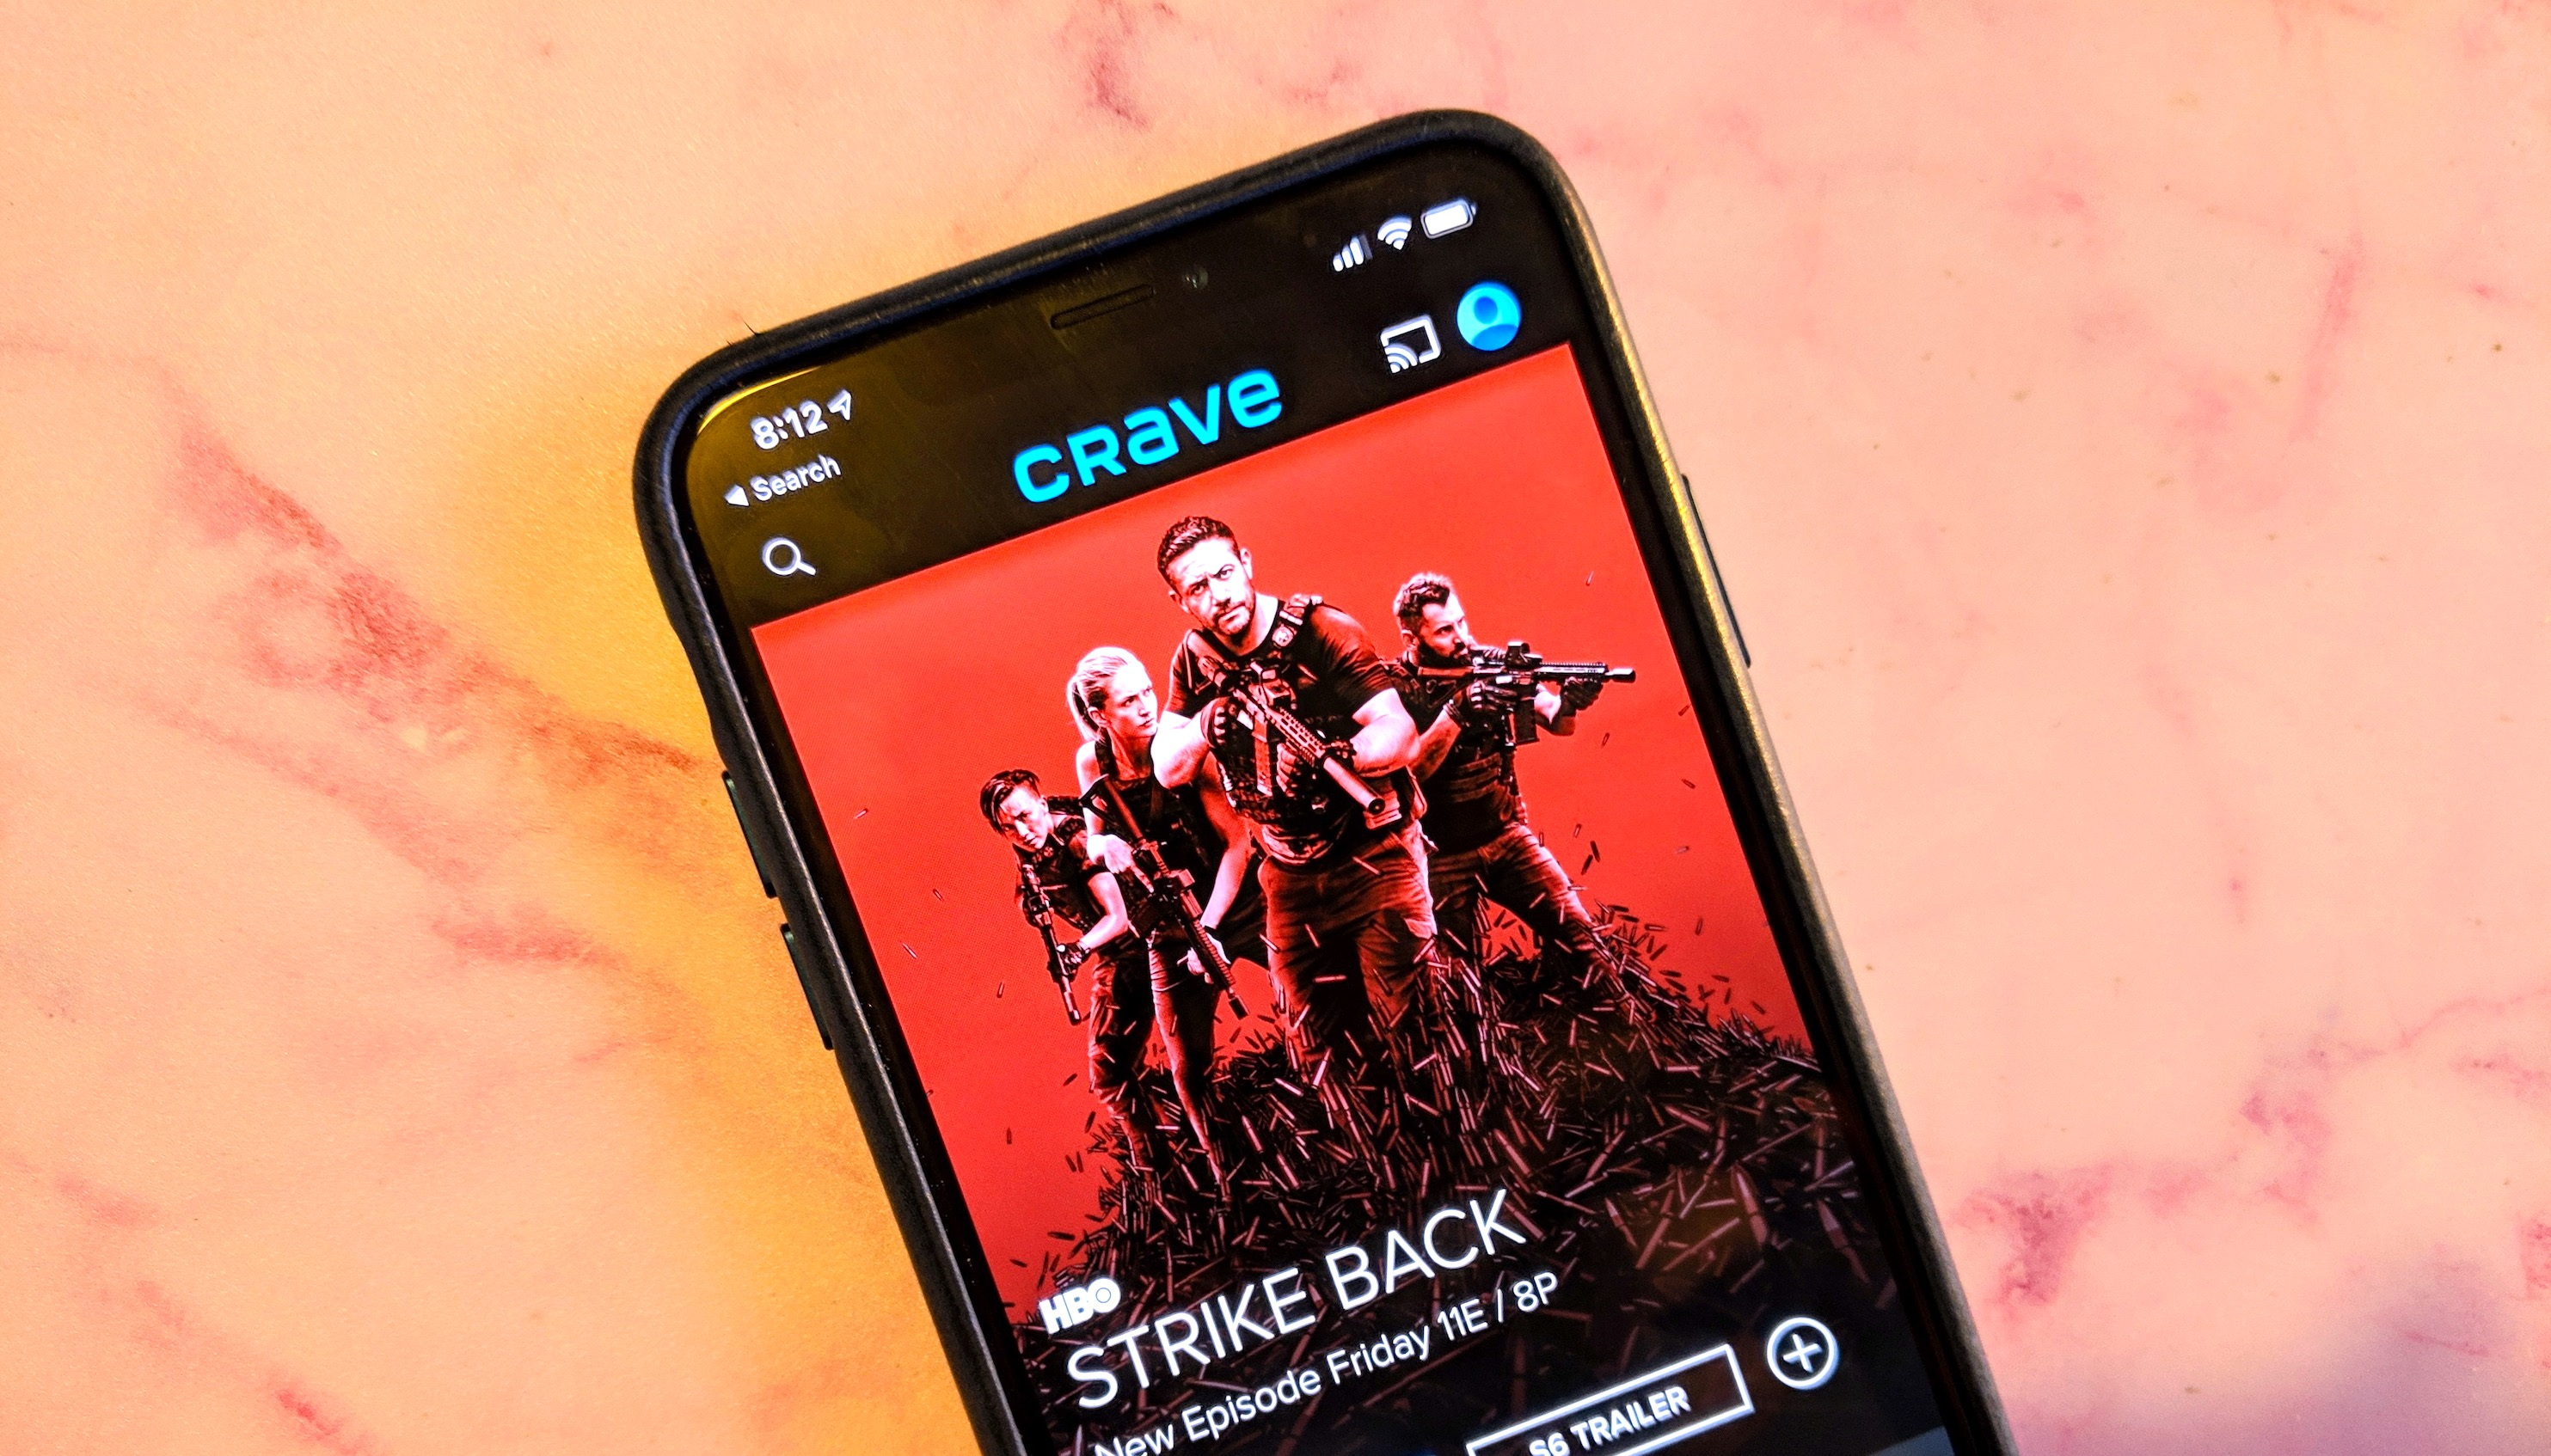 crave tv straming app